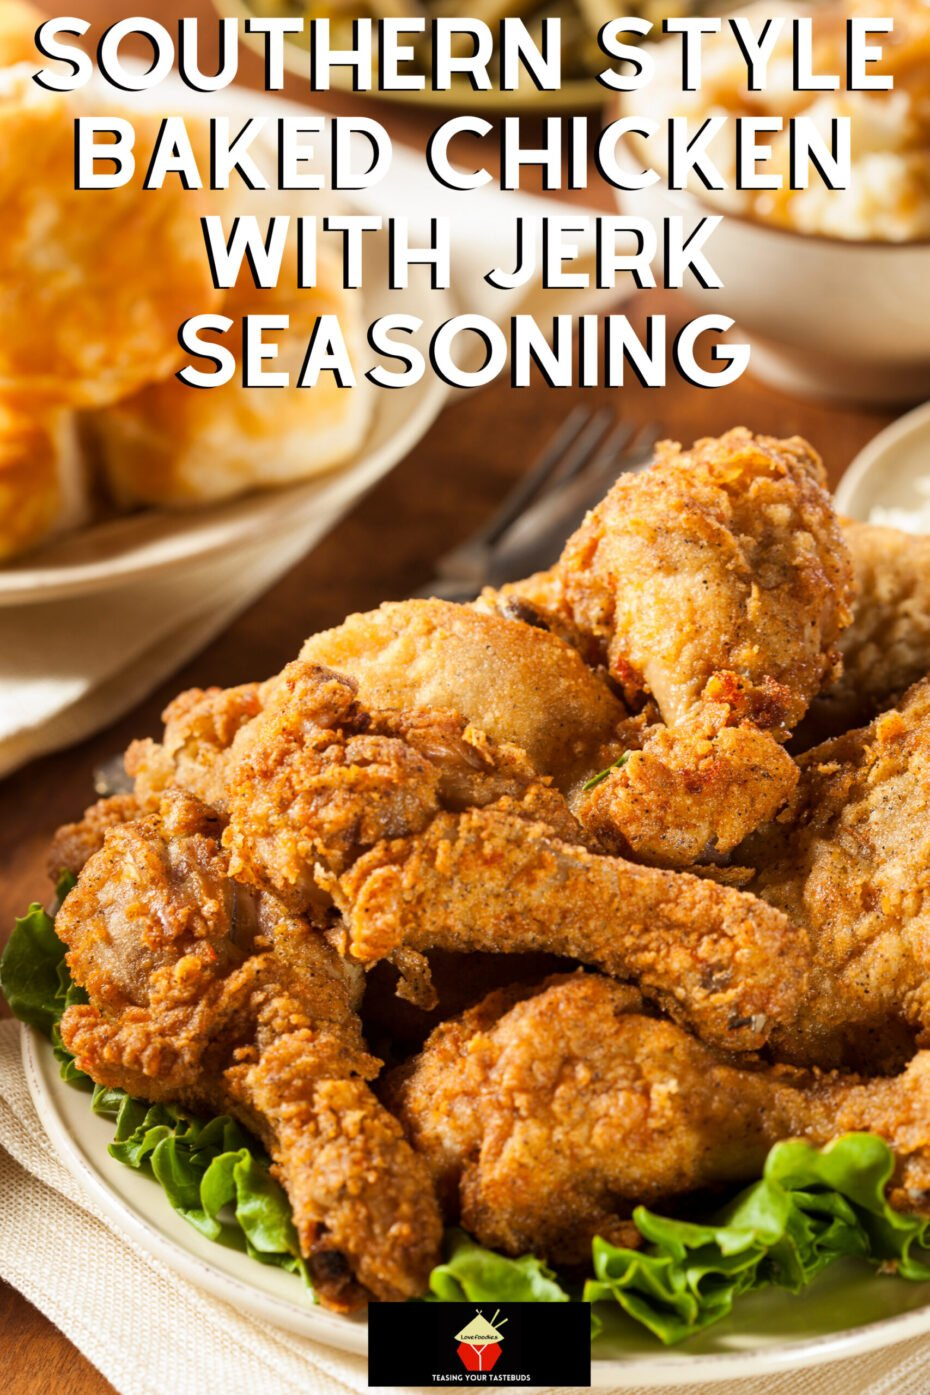 Southern Style Baked Chicken with Jerk Seasoning, marinated in homemade Jerk seasoning and oven-baked with a crispy coating for tender juicy chicken portions. Ideal for a quick and easy dinner, and makes great party food too.